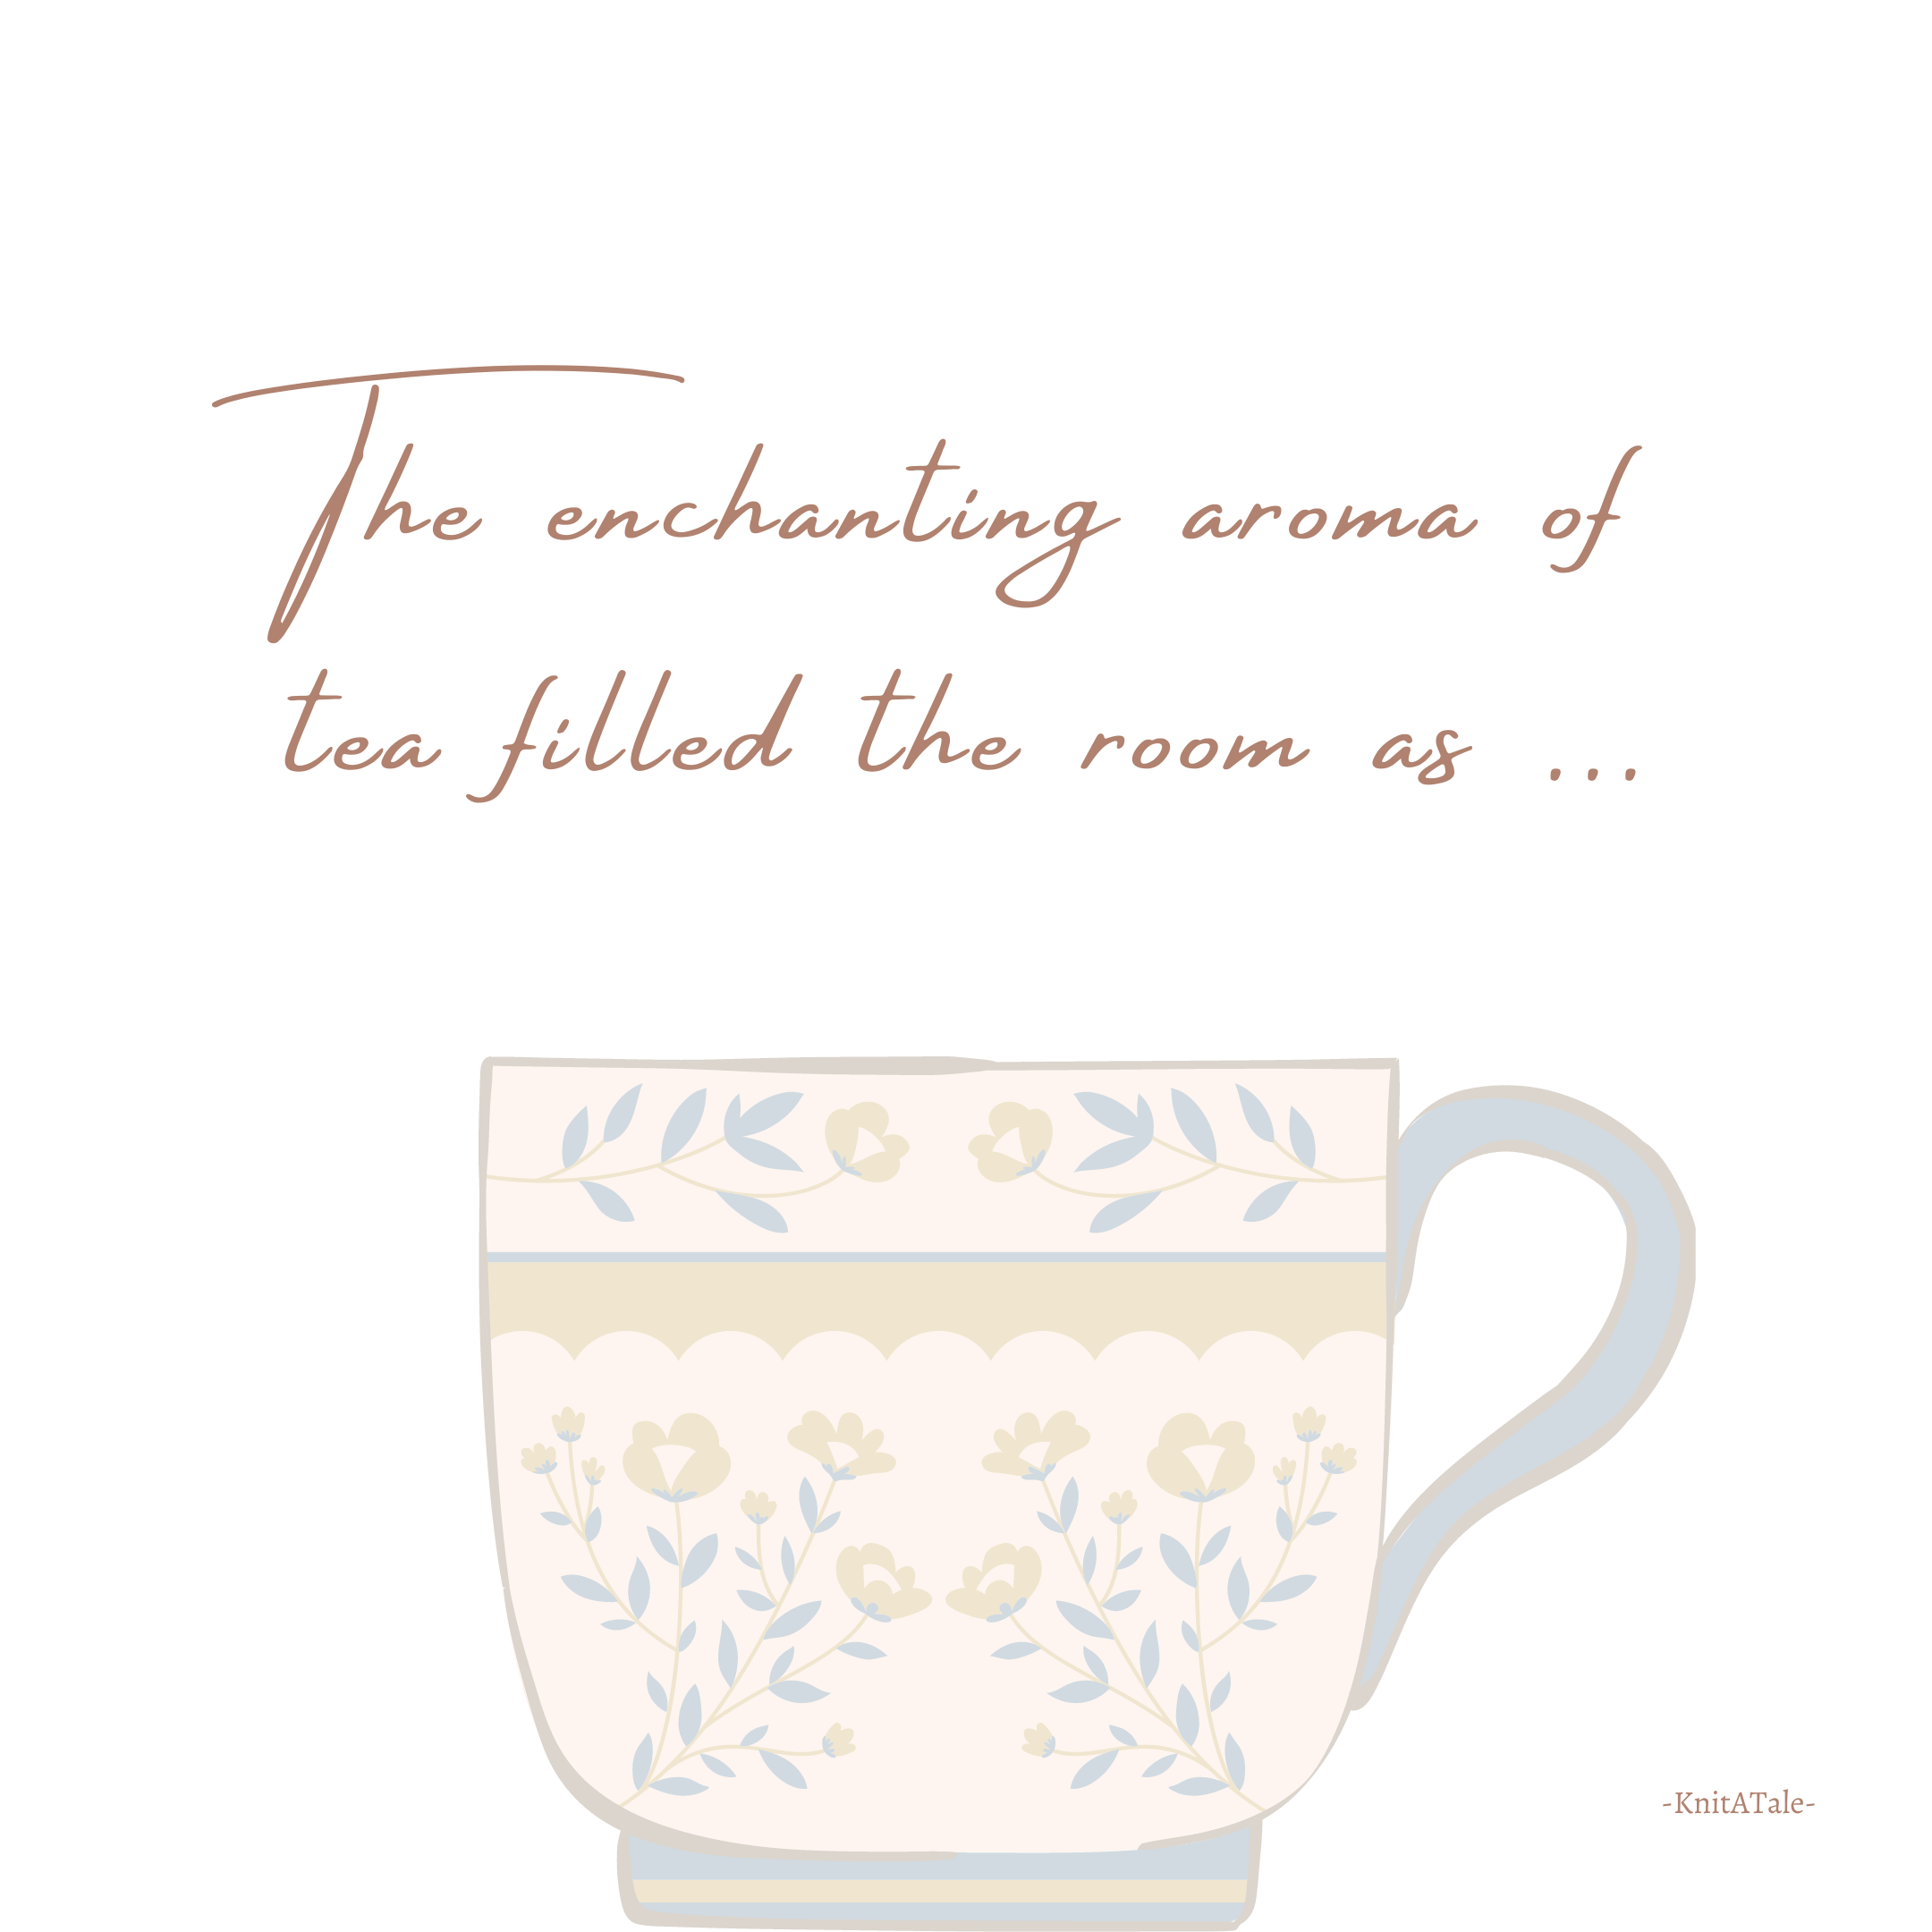 The Enchanting Aroma of Tea filled the Room as…